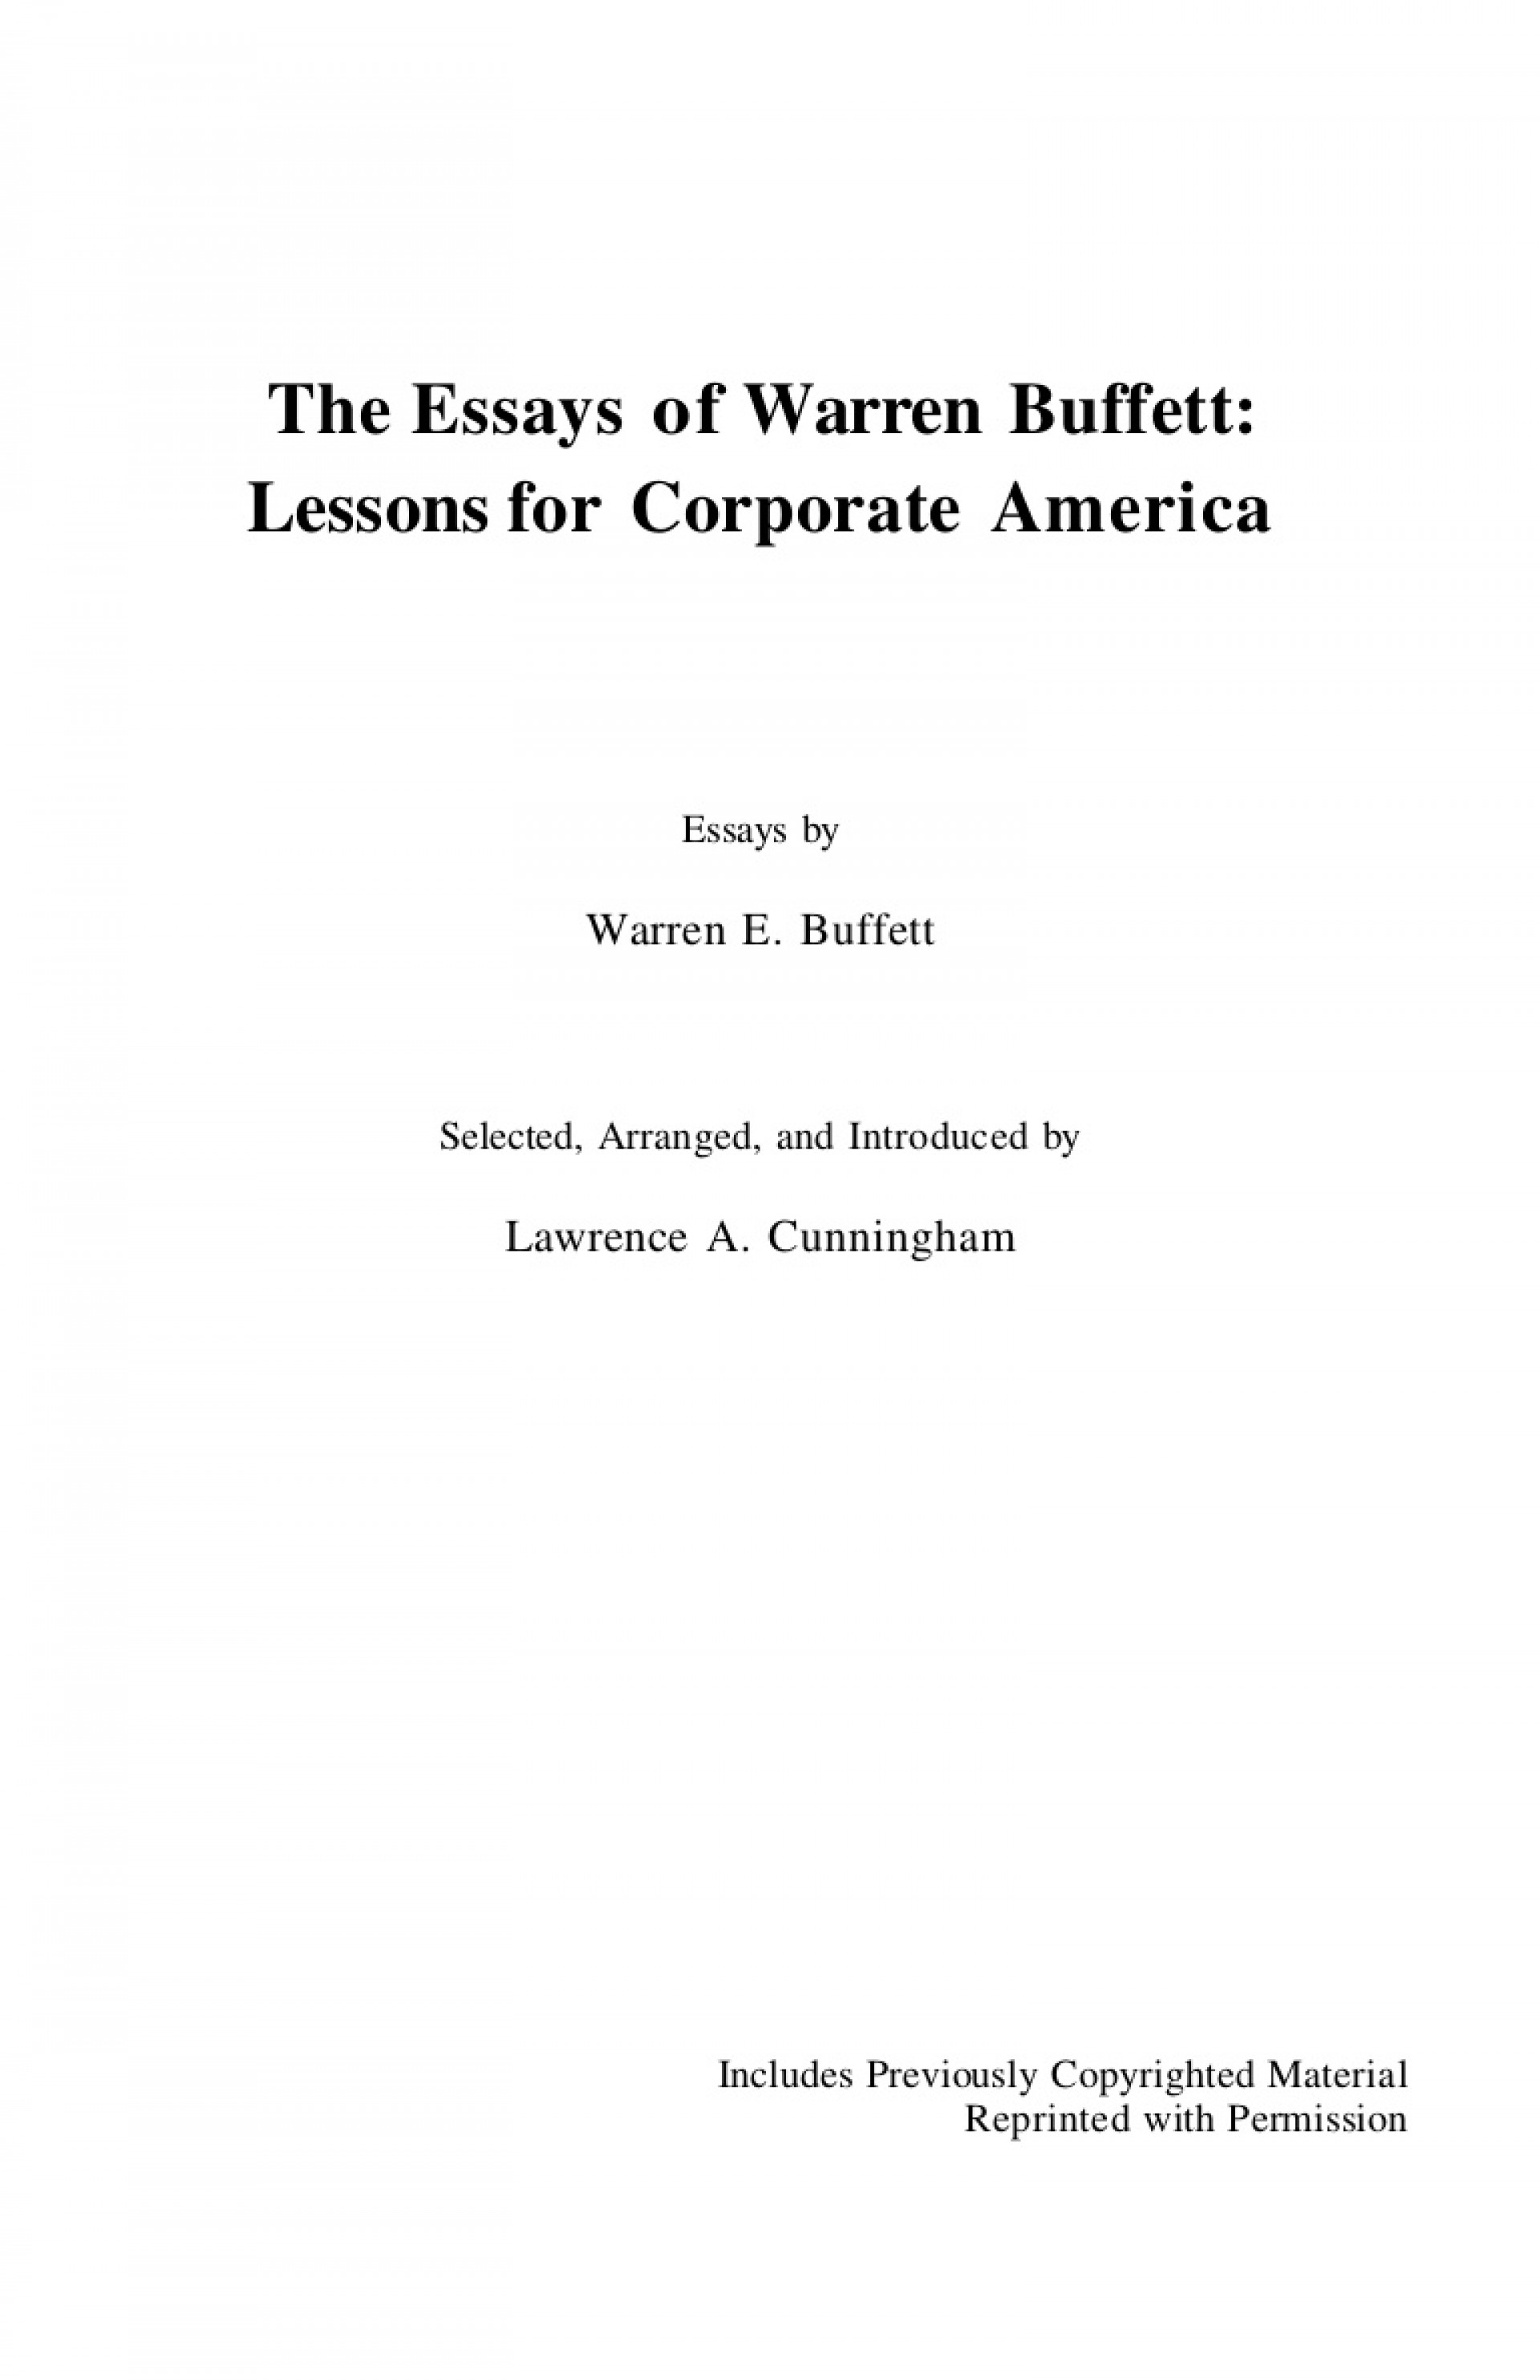 009 Essay Example Essays Of Warren Buffett The Thumbnail Top 4th Edition Pdf Free 1920